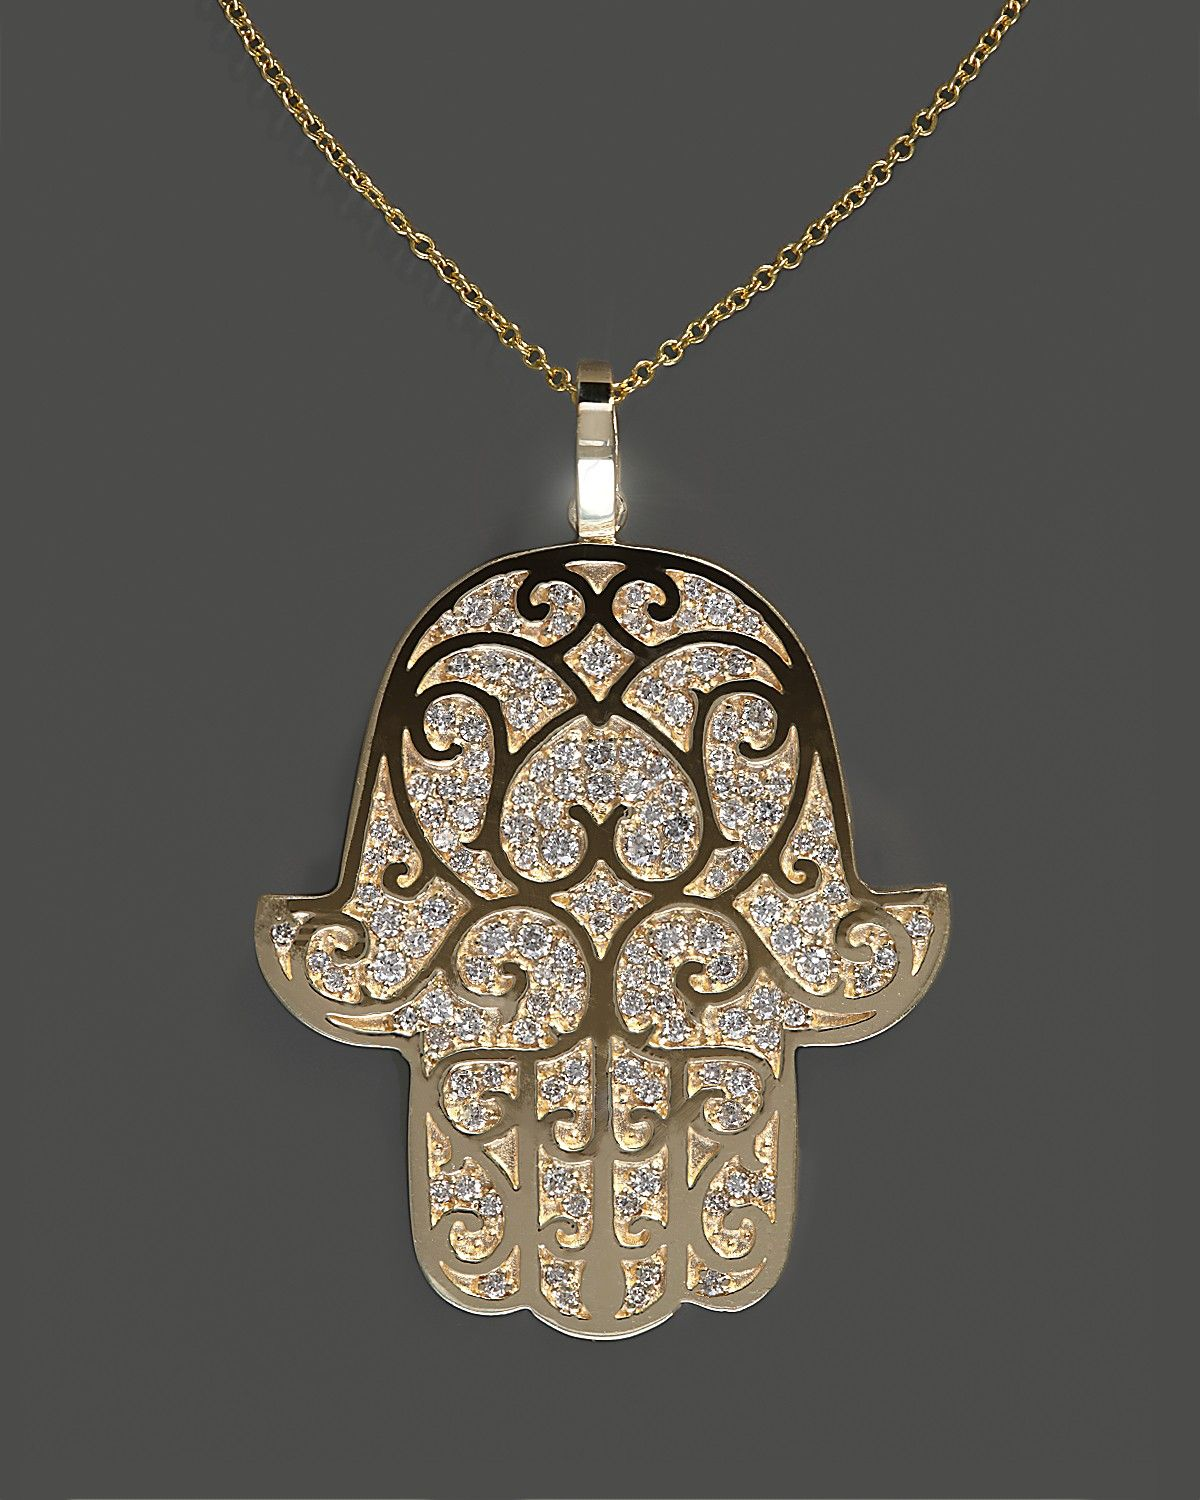 Diamond hamsa pendant necklace in 14k yellow gold 90 ct tw 18 diamond hamsa pendant necklace in 14k yellow gold 90 ct tw 18 mozeypictures